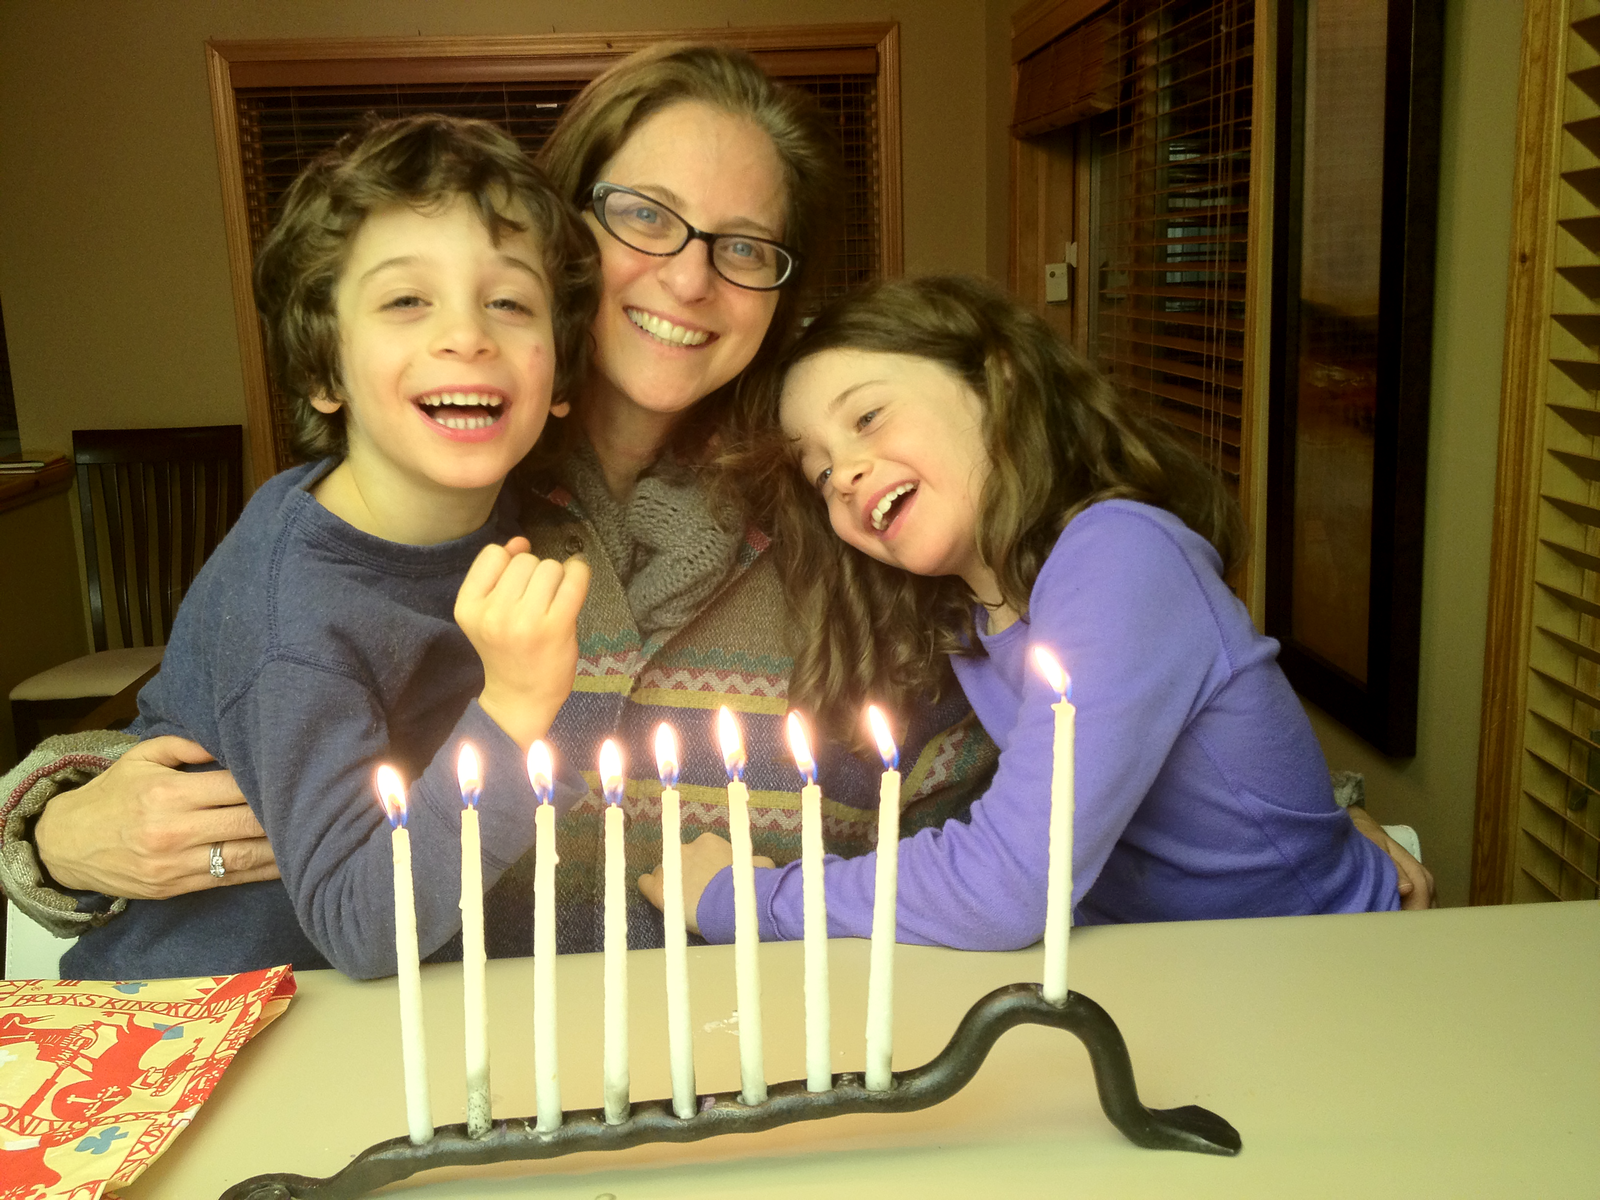 Michelle and her children on the 8th night of Chanukah.